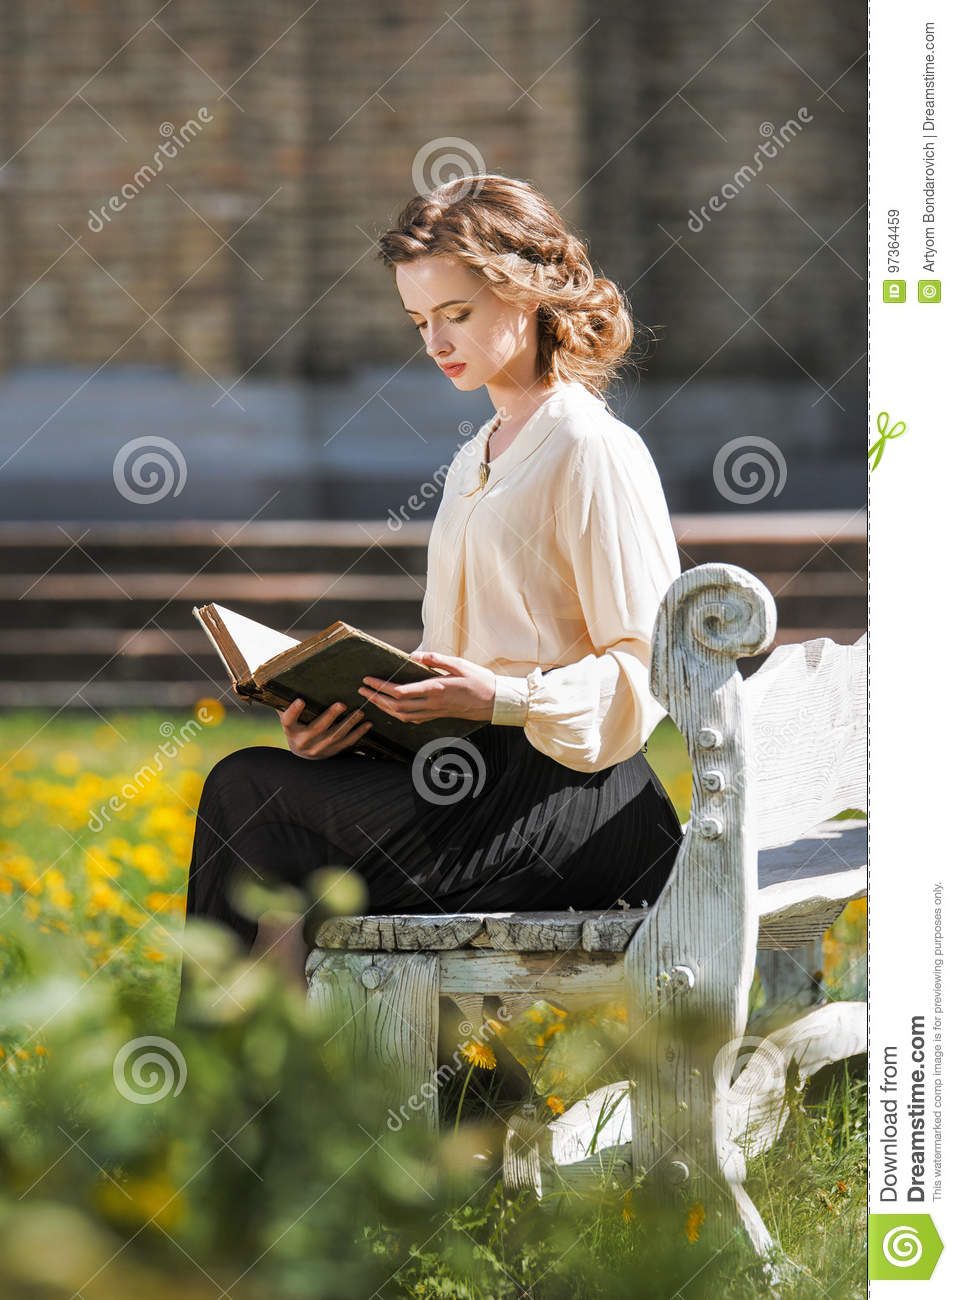 Retro portrait of a beautiful dreamy girl reading a book outdoors. Soft vintage toning.